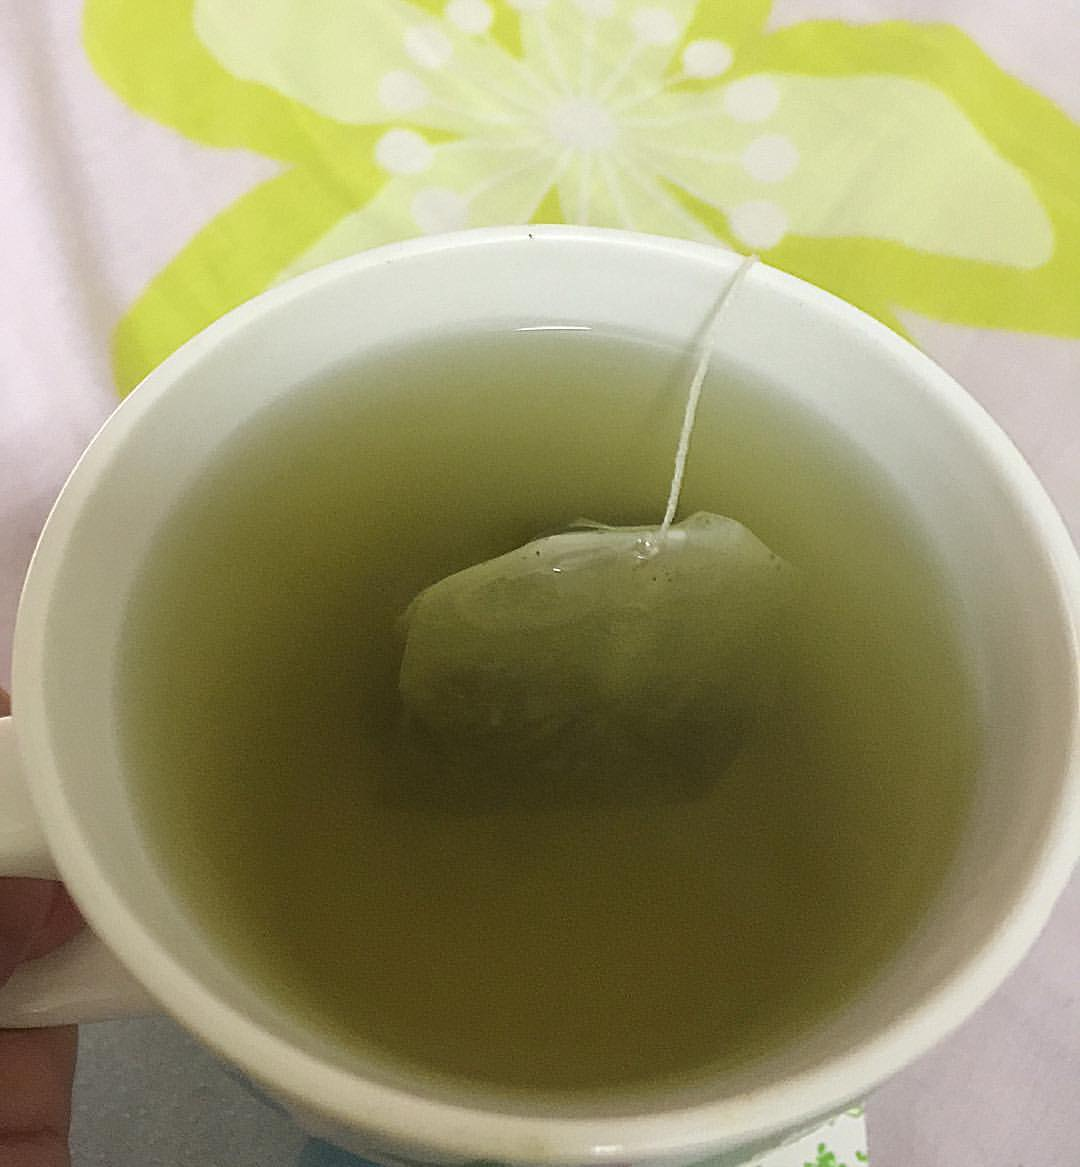 Taking green tea before bed G o o d n i g h t #acupofgreentea ? #drinkhealthy